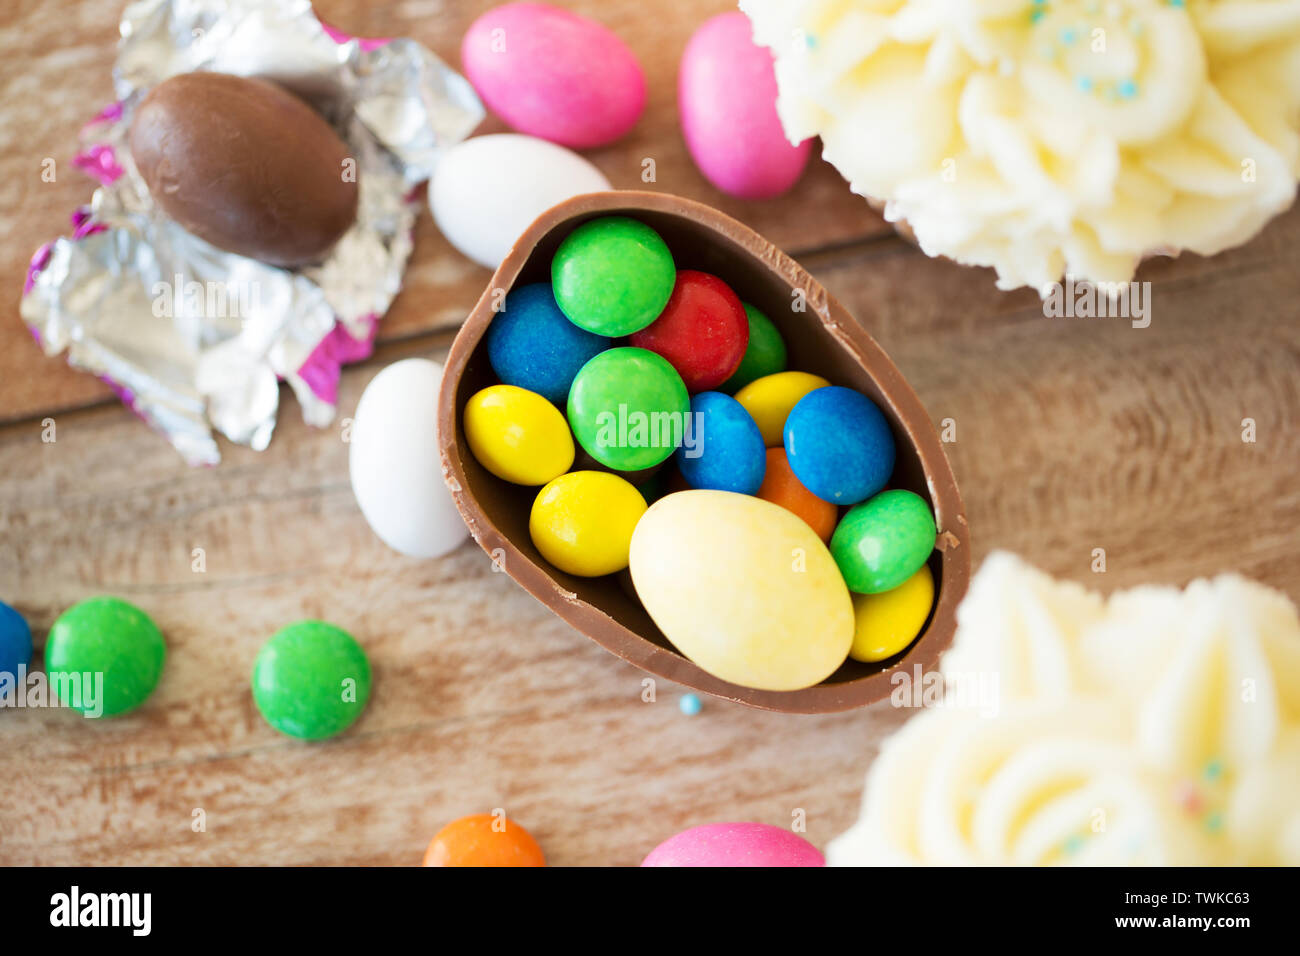 chocolate egg with candies and cupcakes on table - Stock Image